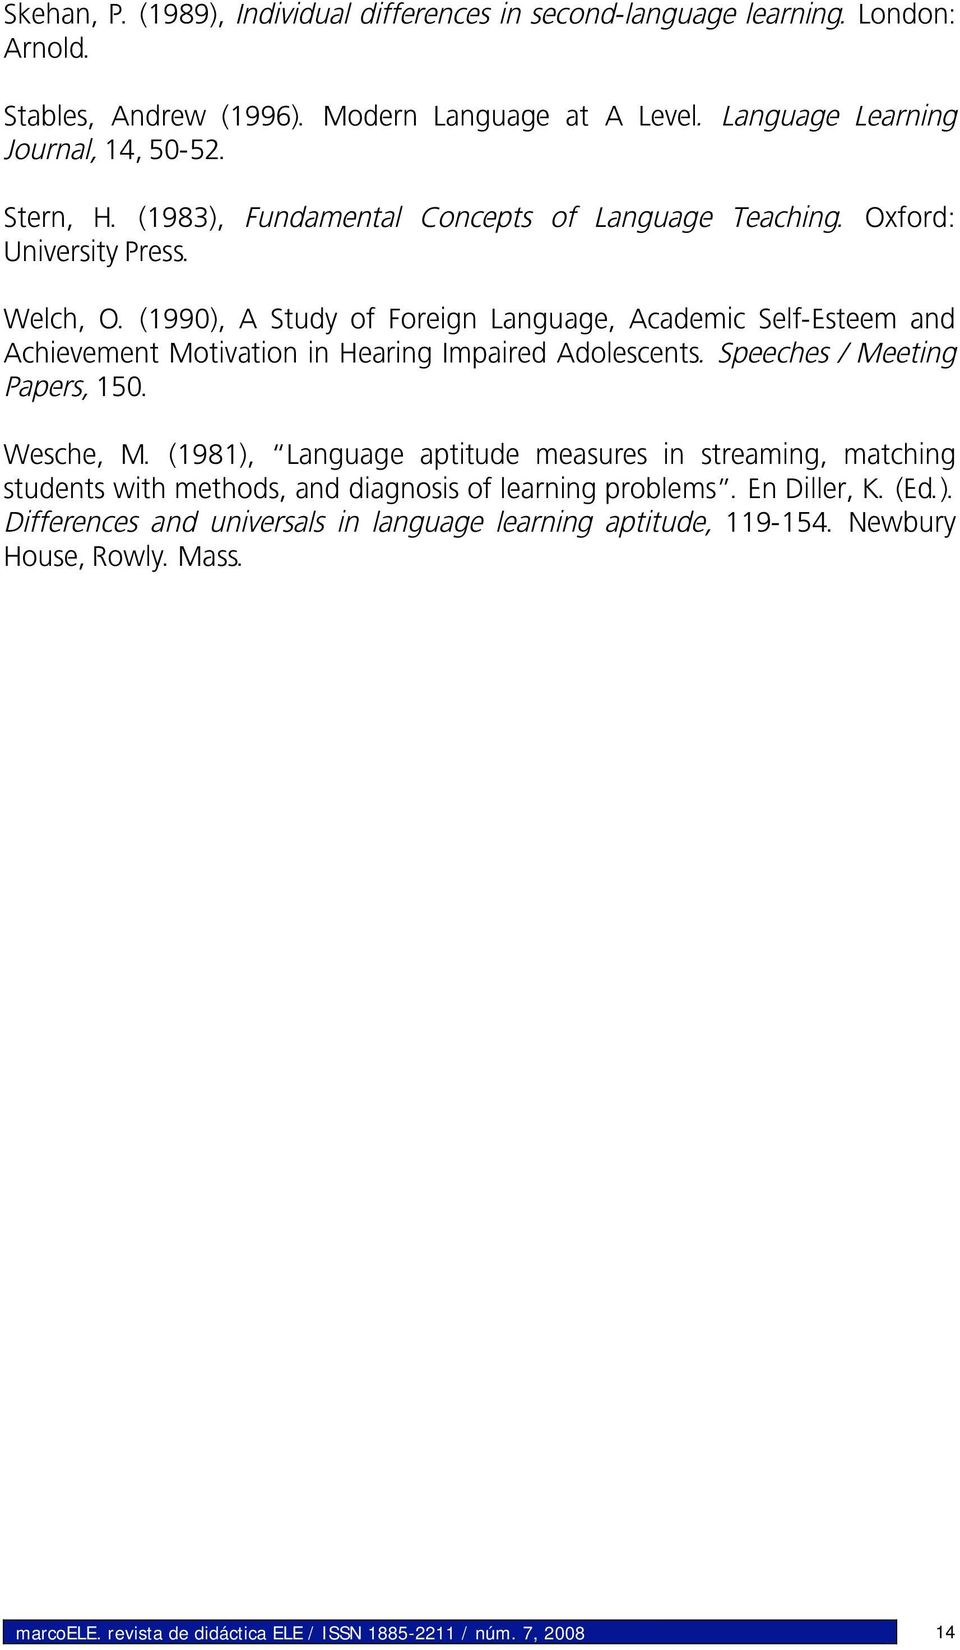 (1990), A Study of Foreign Language, Academic Self-Esteem and Achievement Motivation in Hearing Impaired Adolescents. Speeches / Meeting Papers, 150. Wesche, M.